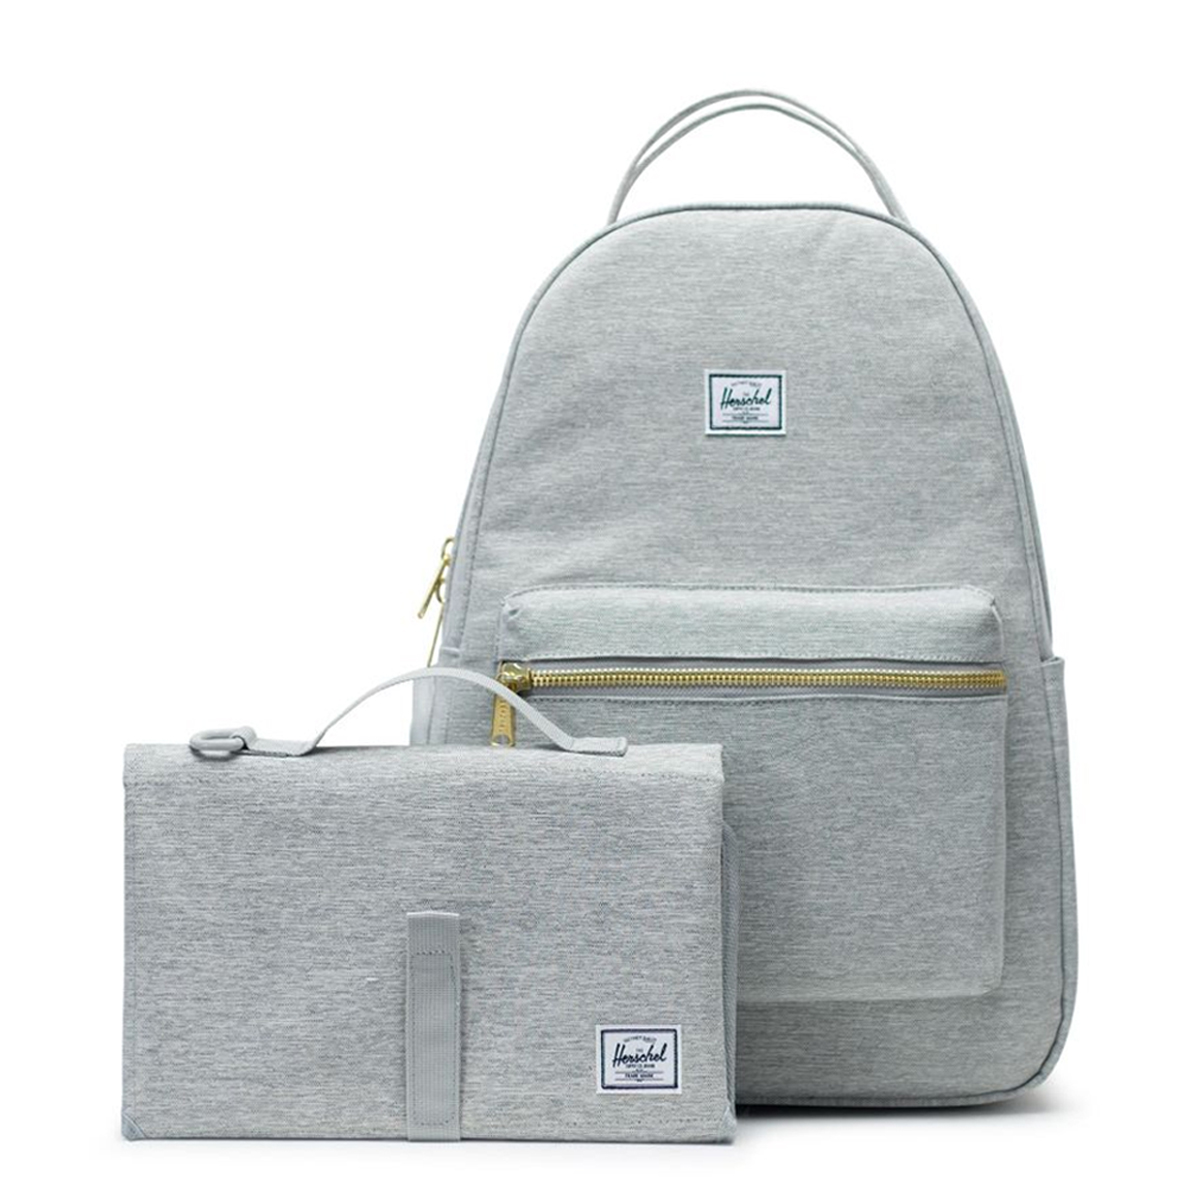 Herschel Nova Sprout Diaper Backpack - Light Grey Crosshatch